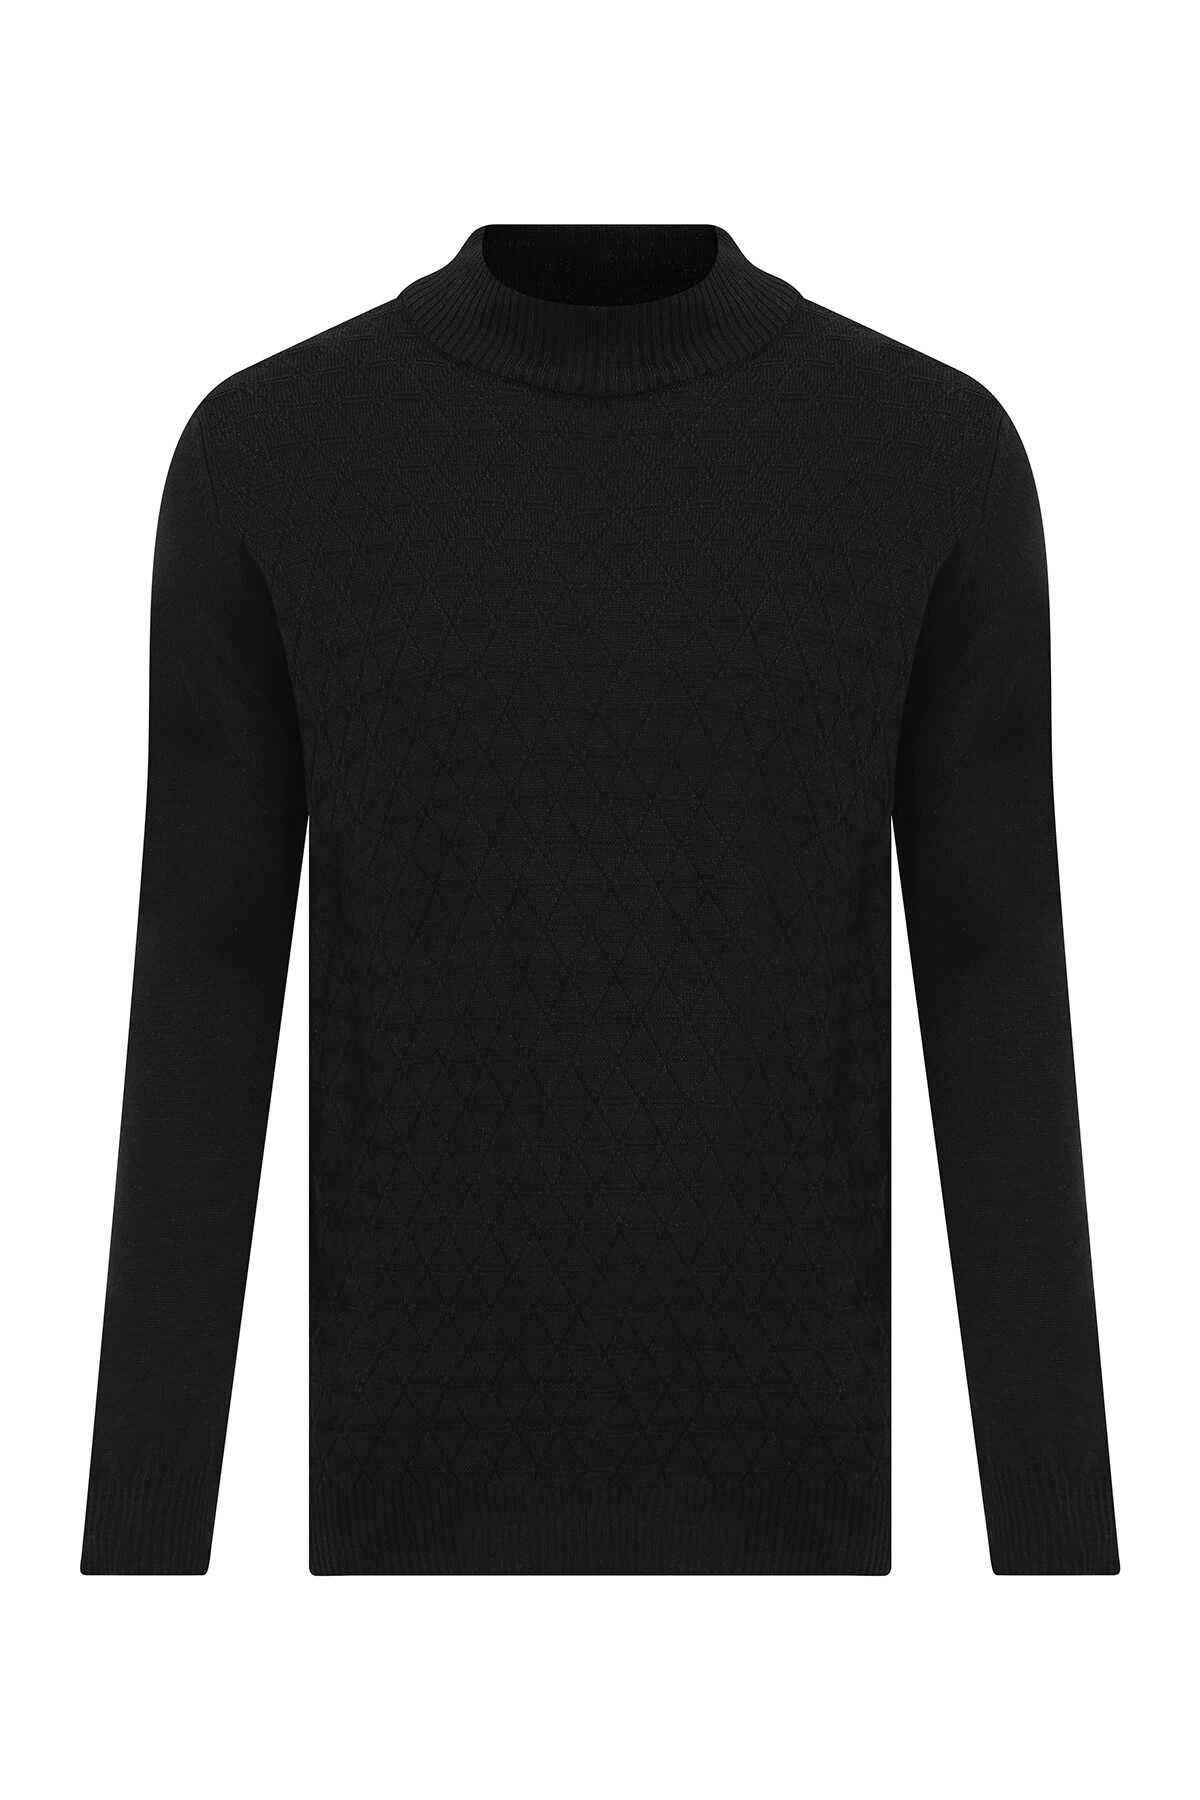 - Black Sweater